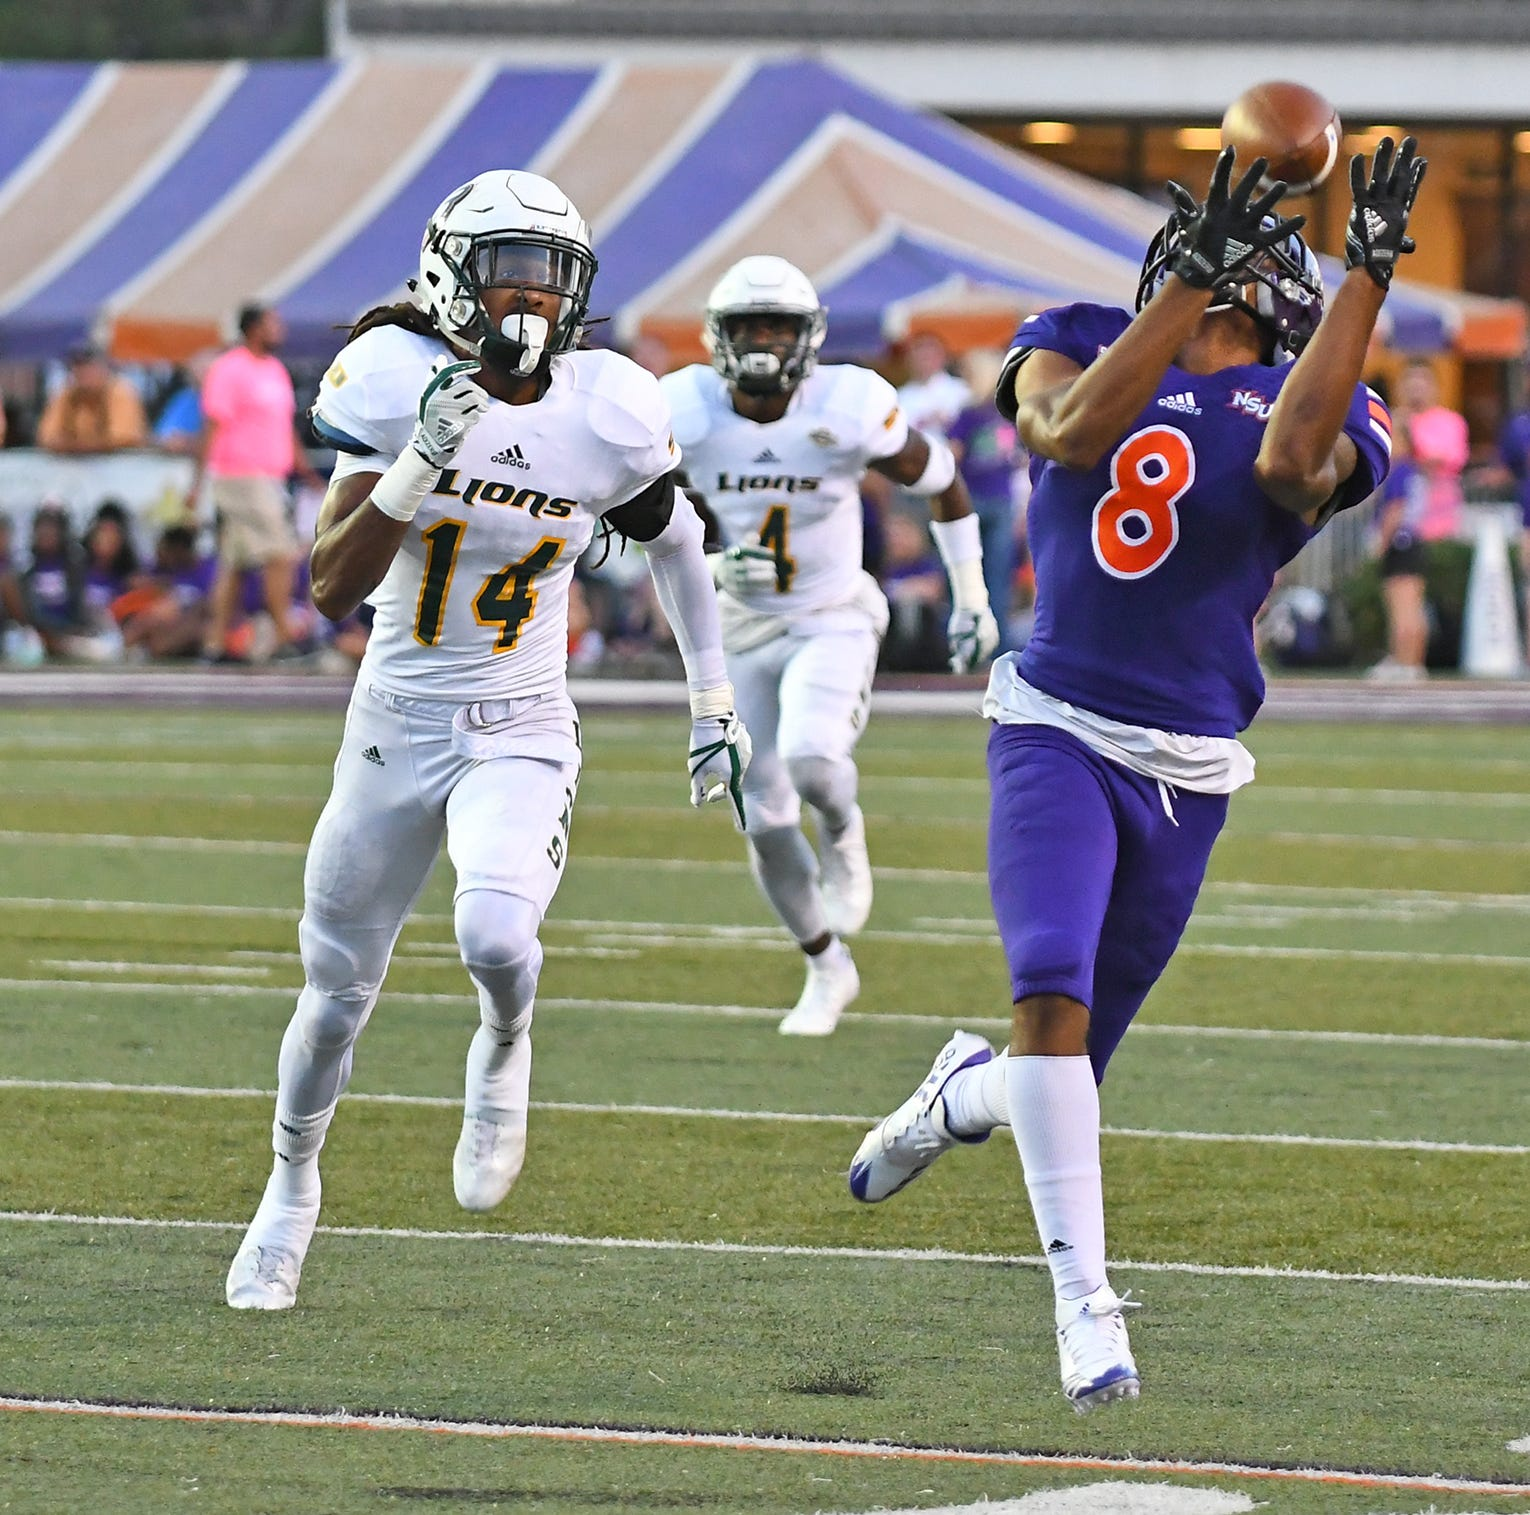 Northwestern State's Jaylen Watson defies 'Mute' nickname on the field